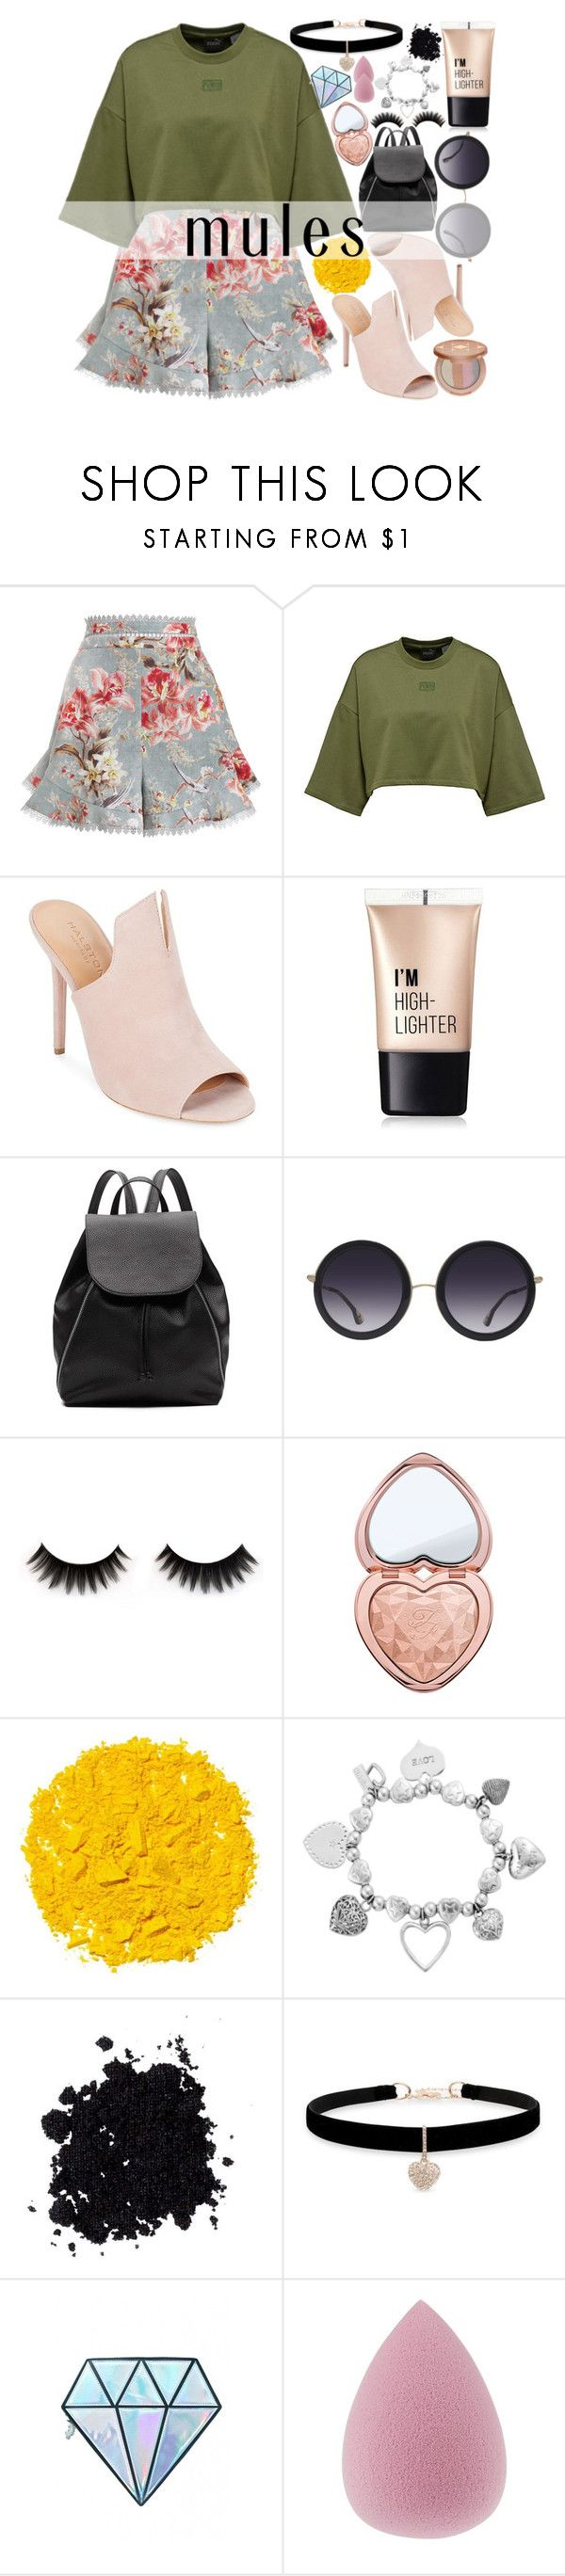 """""""Slip 'Em On: Mules"""" by fangirl-preferences ❤ liked on Polyvore featuring Zimmermann, Halston Heritage, Charlotte Russe, Witchery, Alice + Olivia, Too Faced Cosmetics, Illamasqua, ChloBo, Betsey Johnson and Unicorn Lashes"""